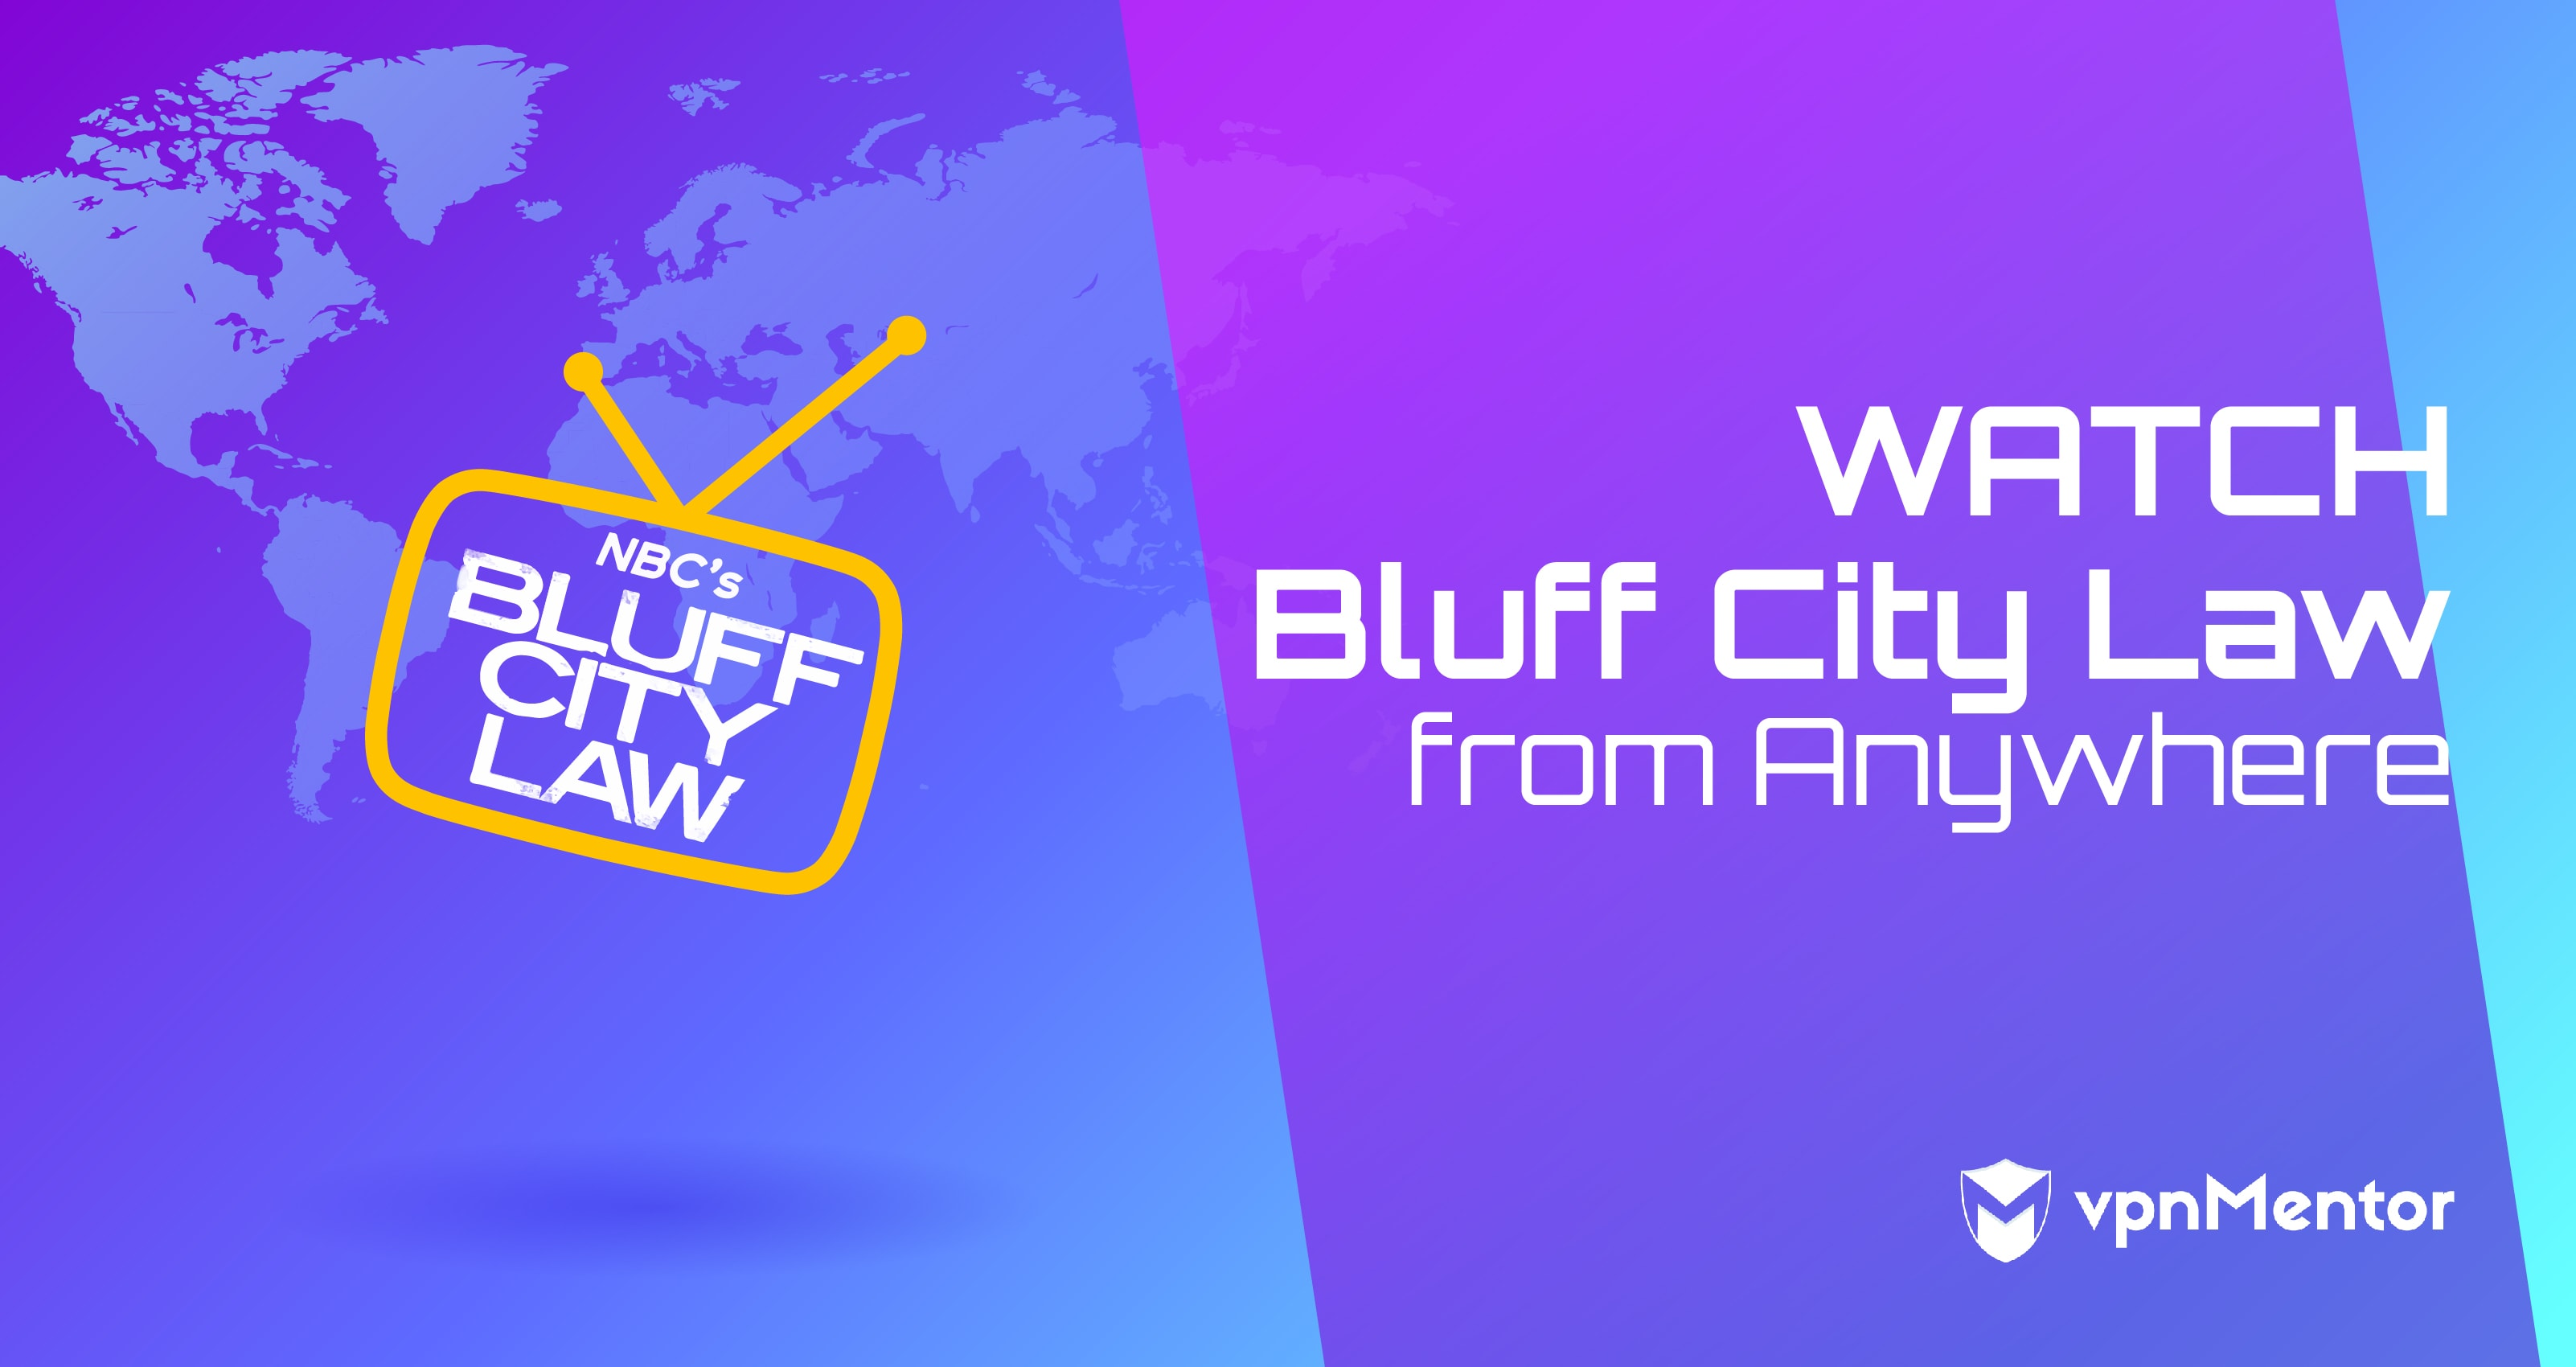 Watch Bluff City Law Anywhere